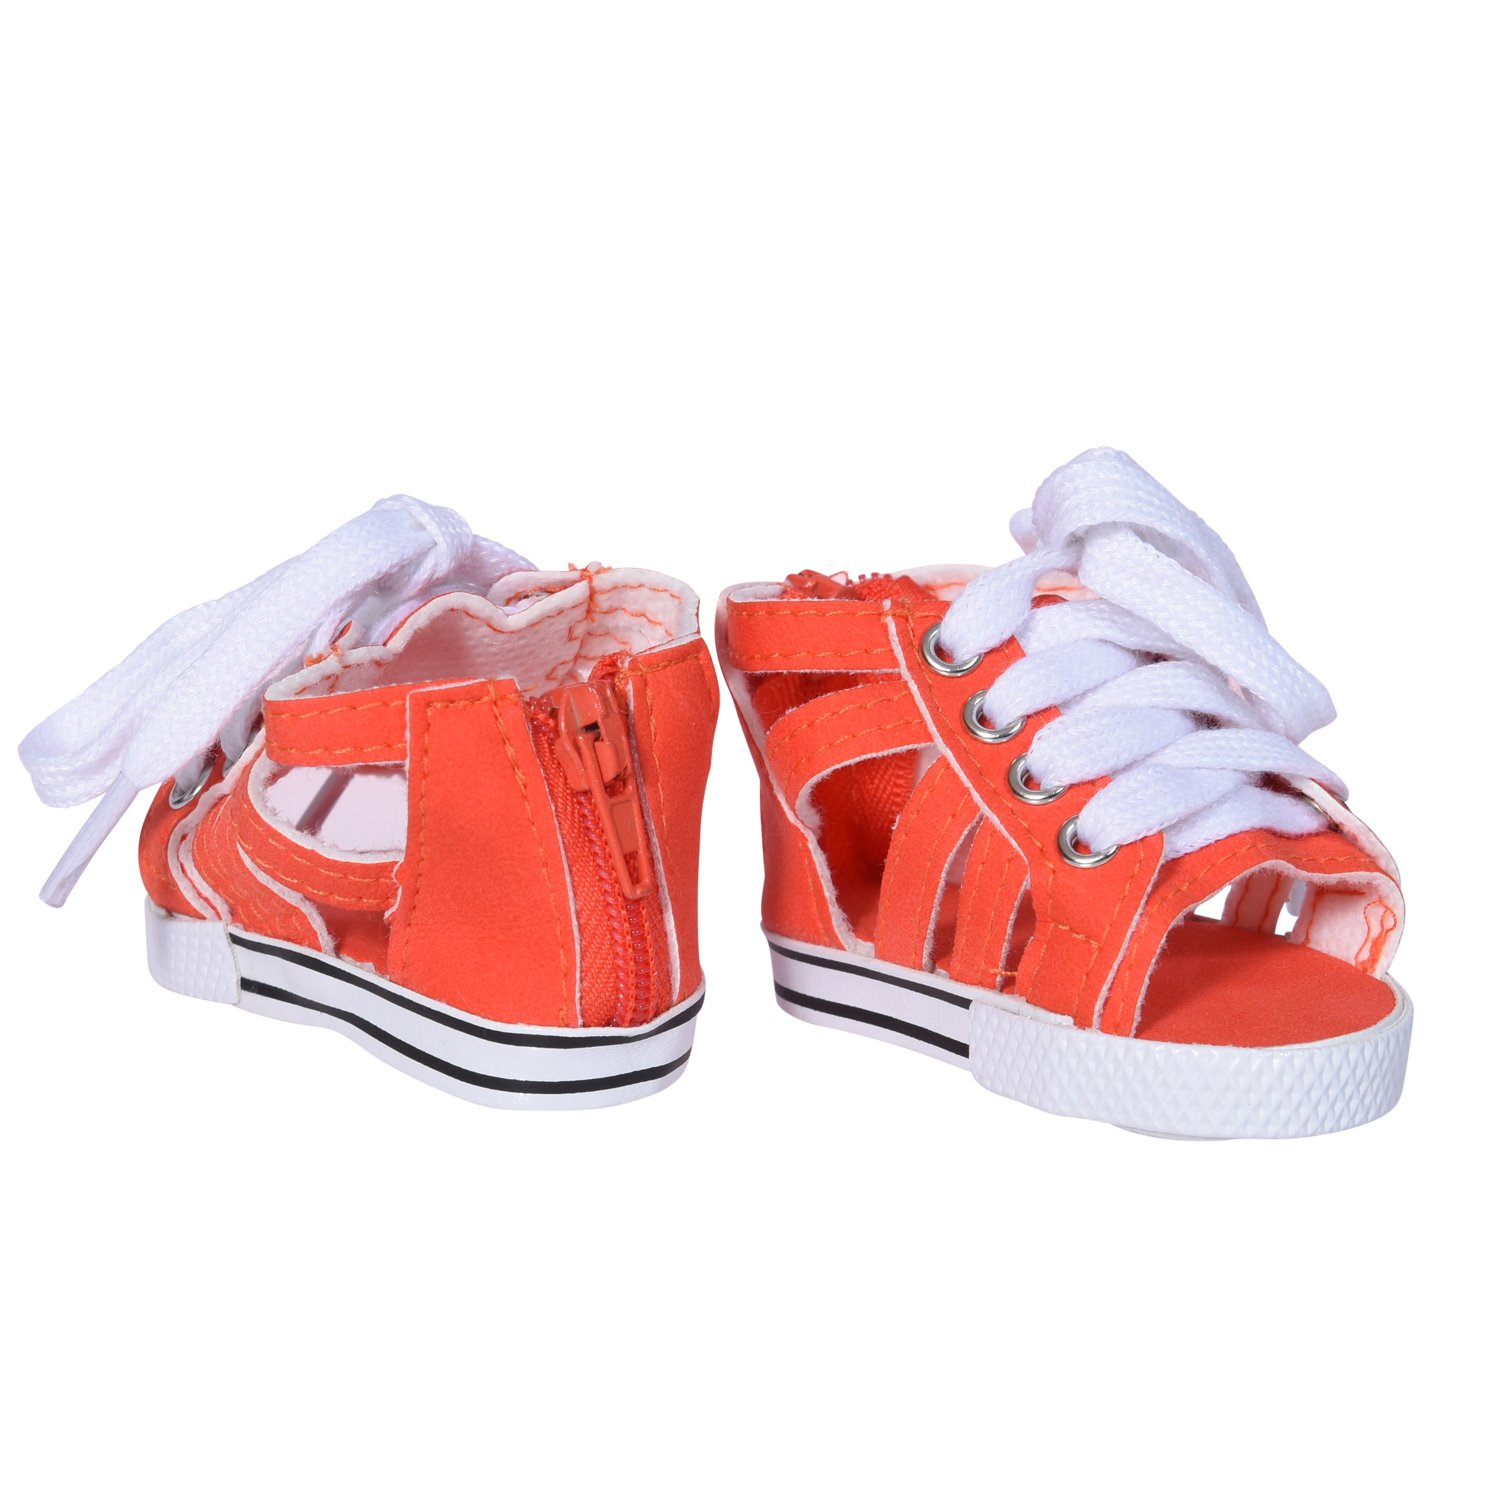 Red Canvas Tennis Shoes fits 18 inch American Girl Dolls